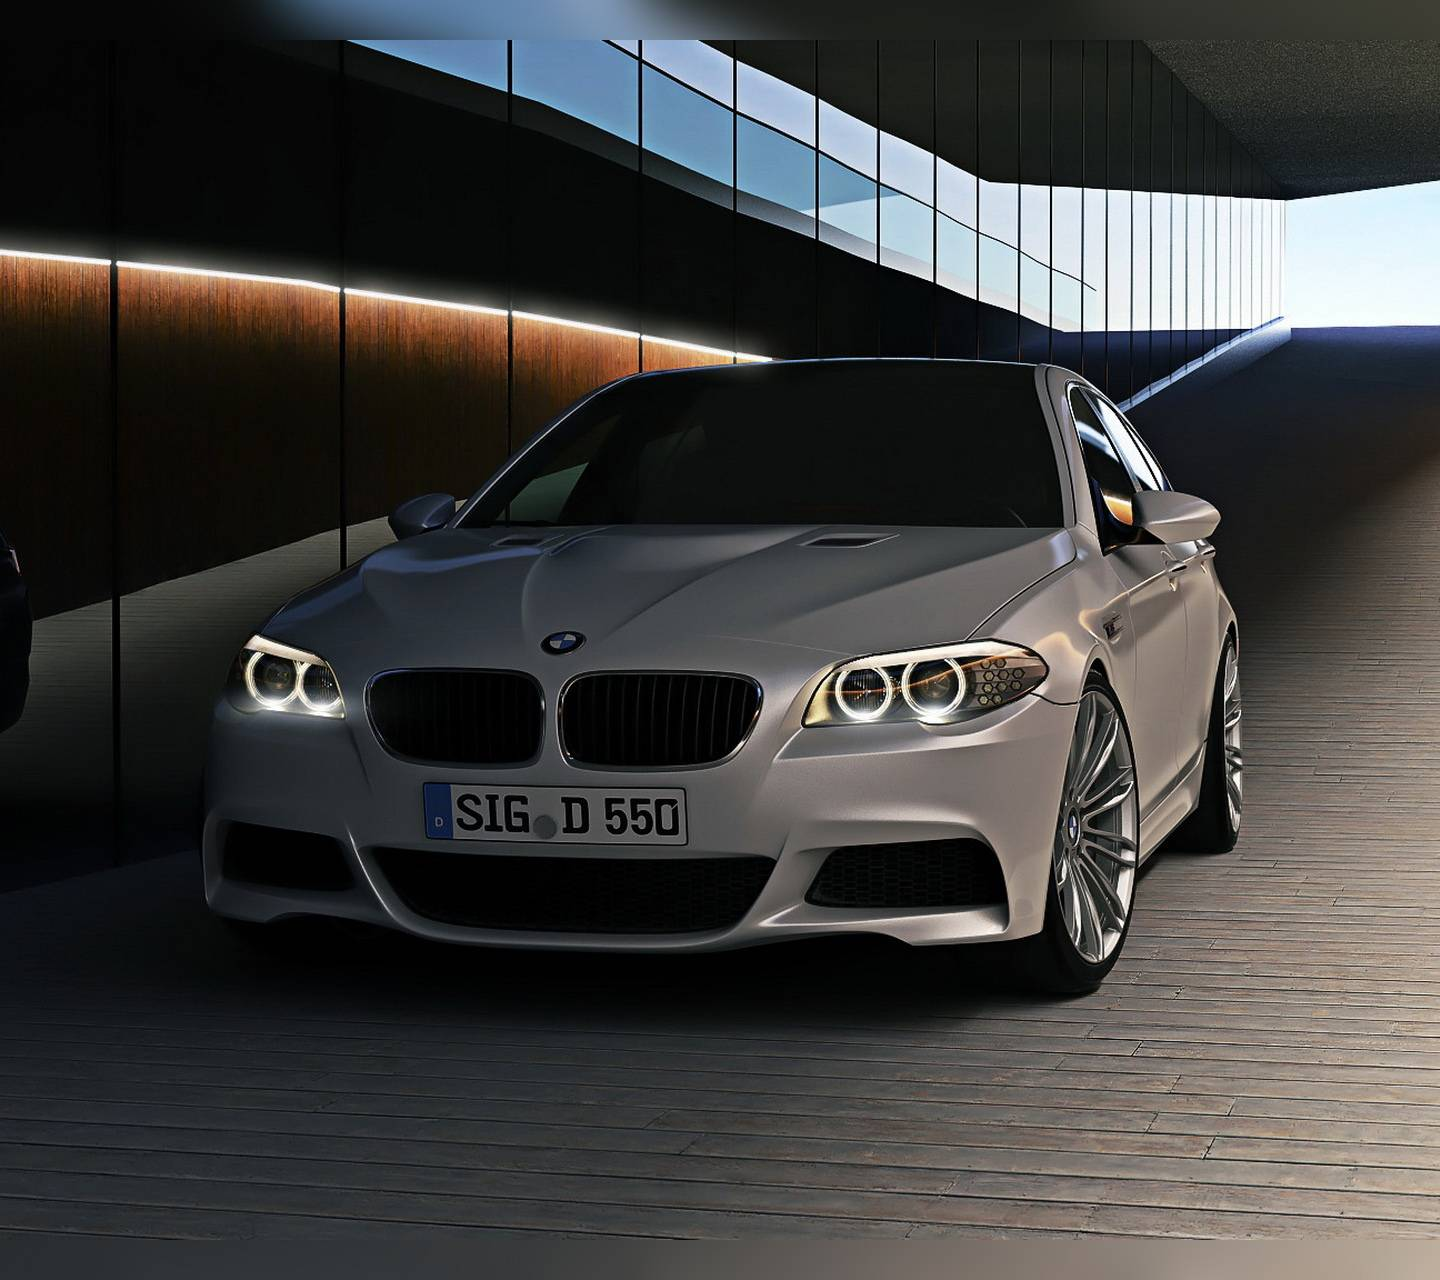 Bmw Wallpapers And Backgrounds: BMW M5 Wallpaper By P3TR1T